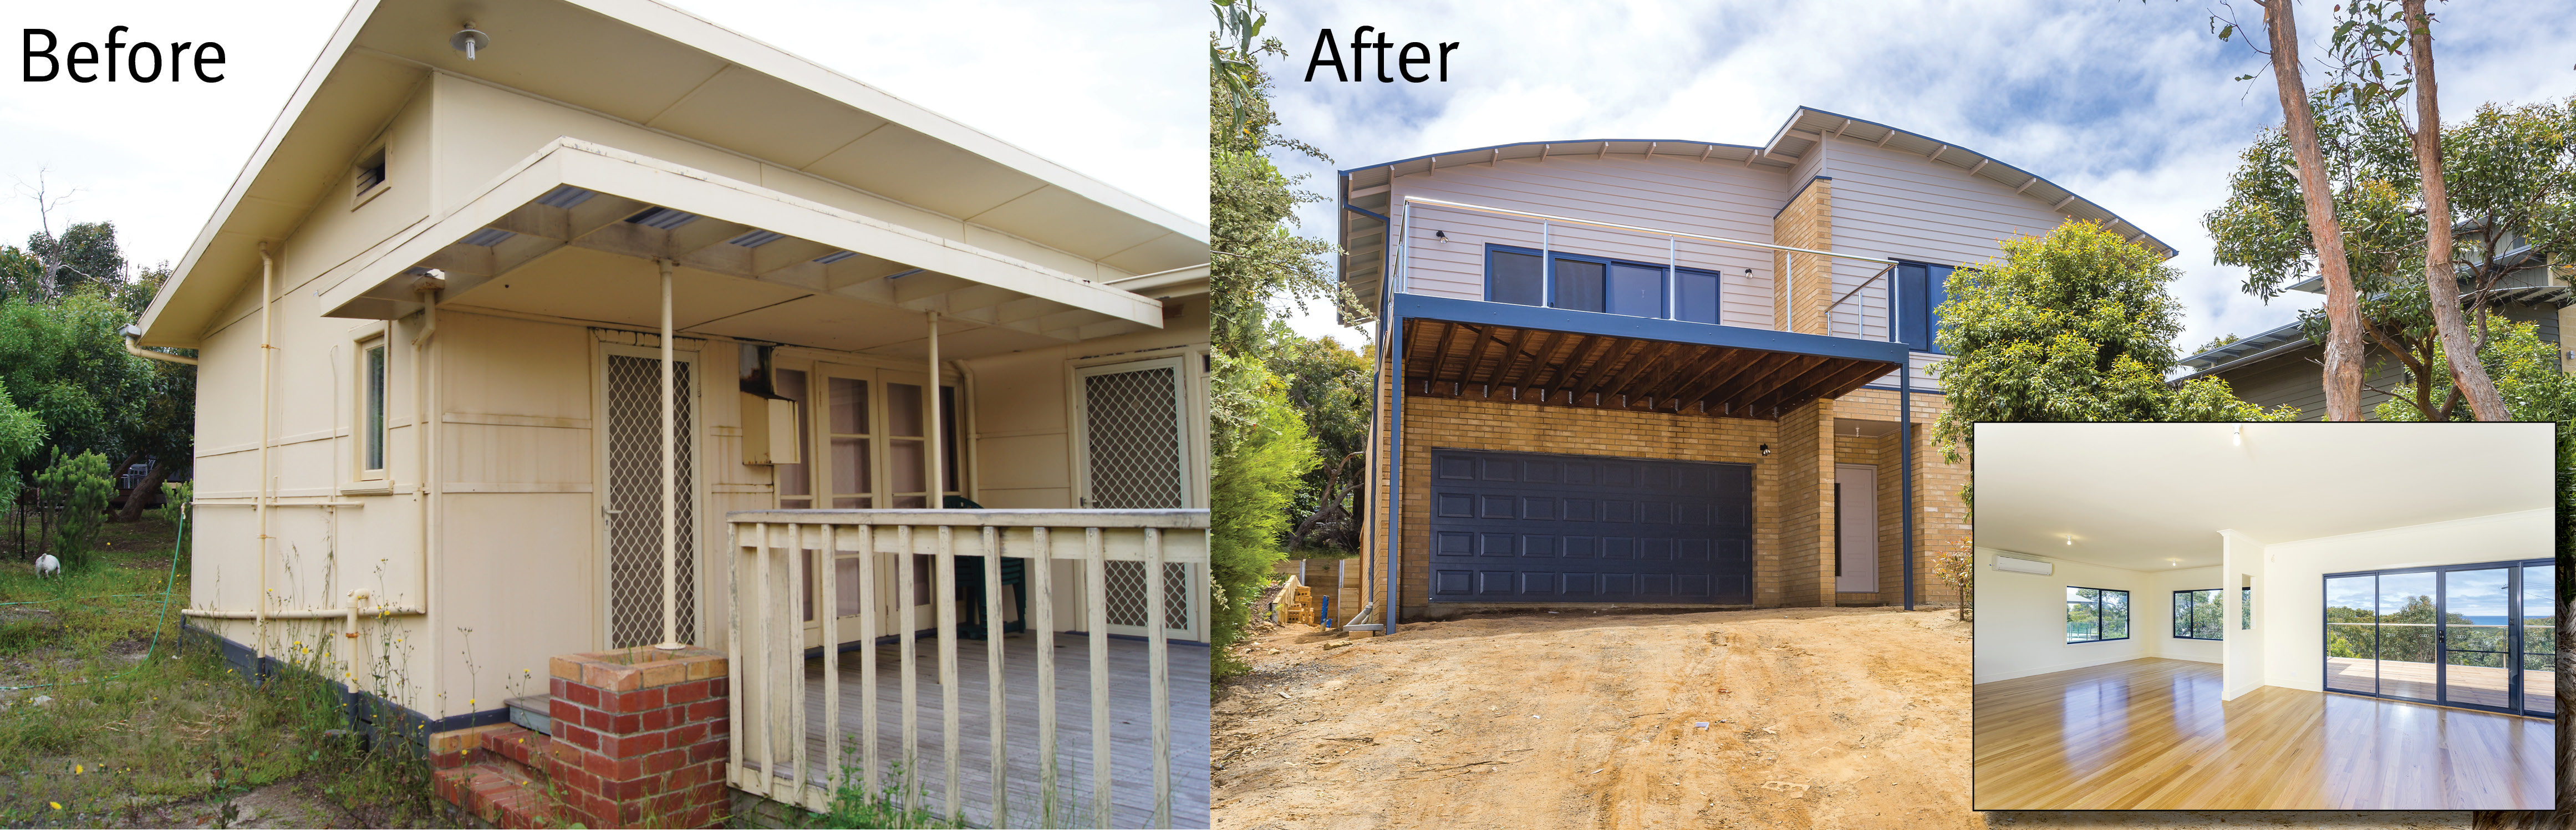 Knockdown rebuild project by Hotondo Homes builder Peter Scott.